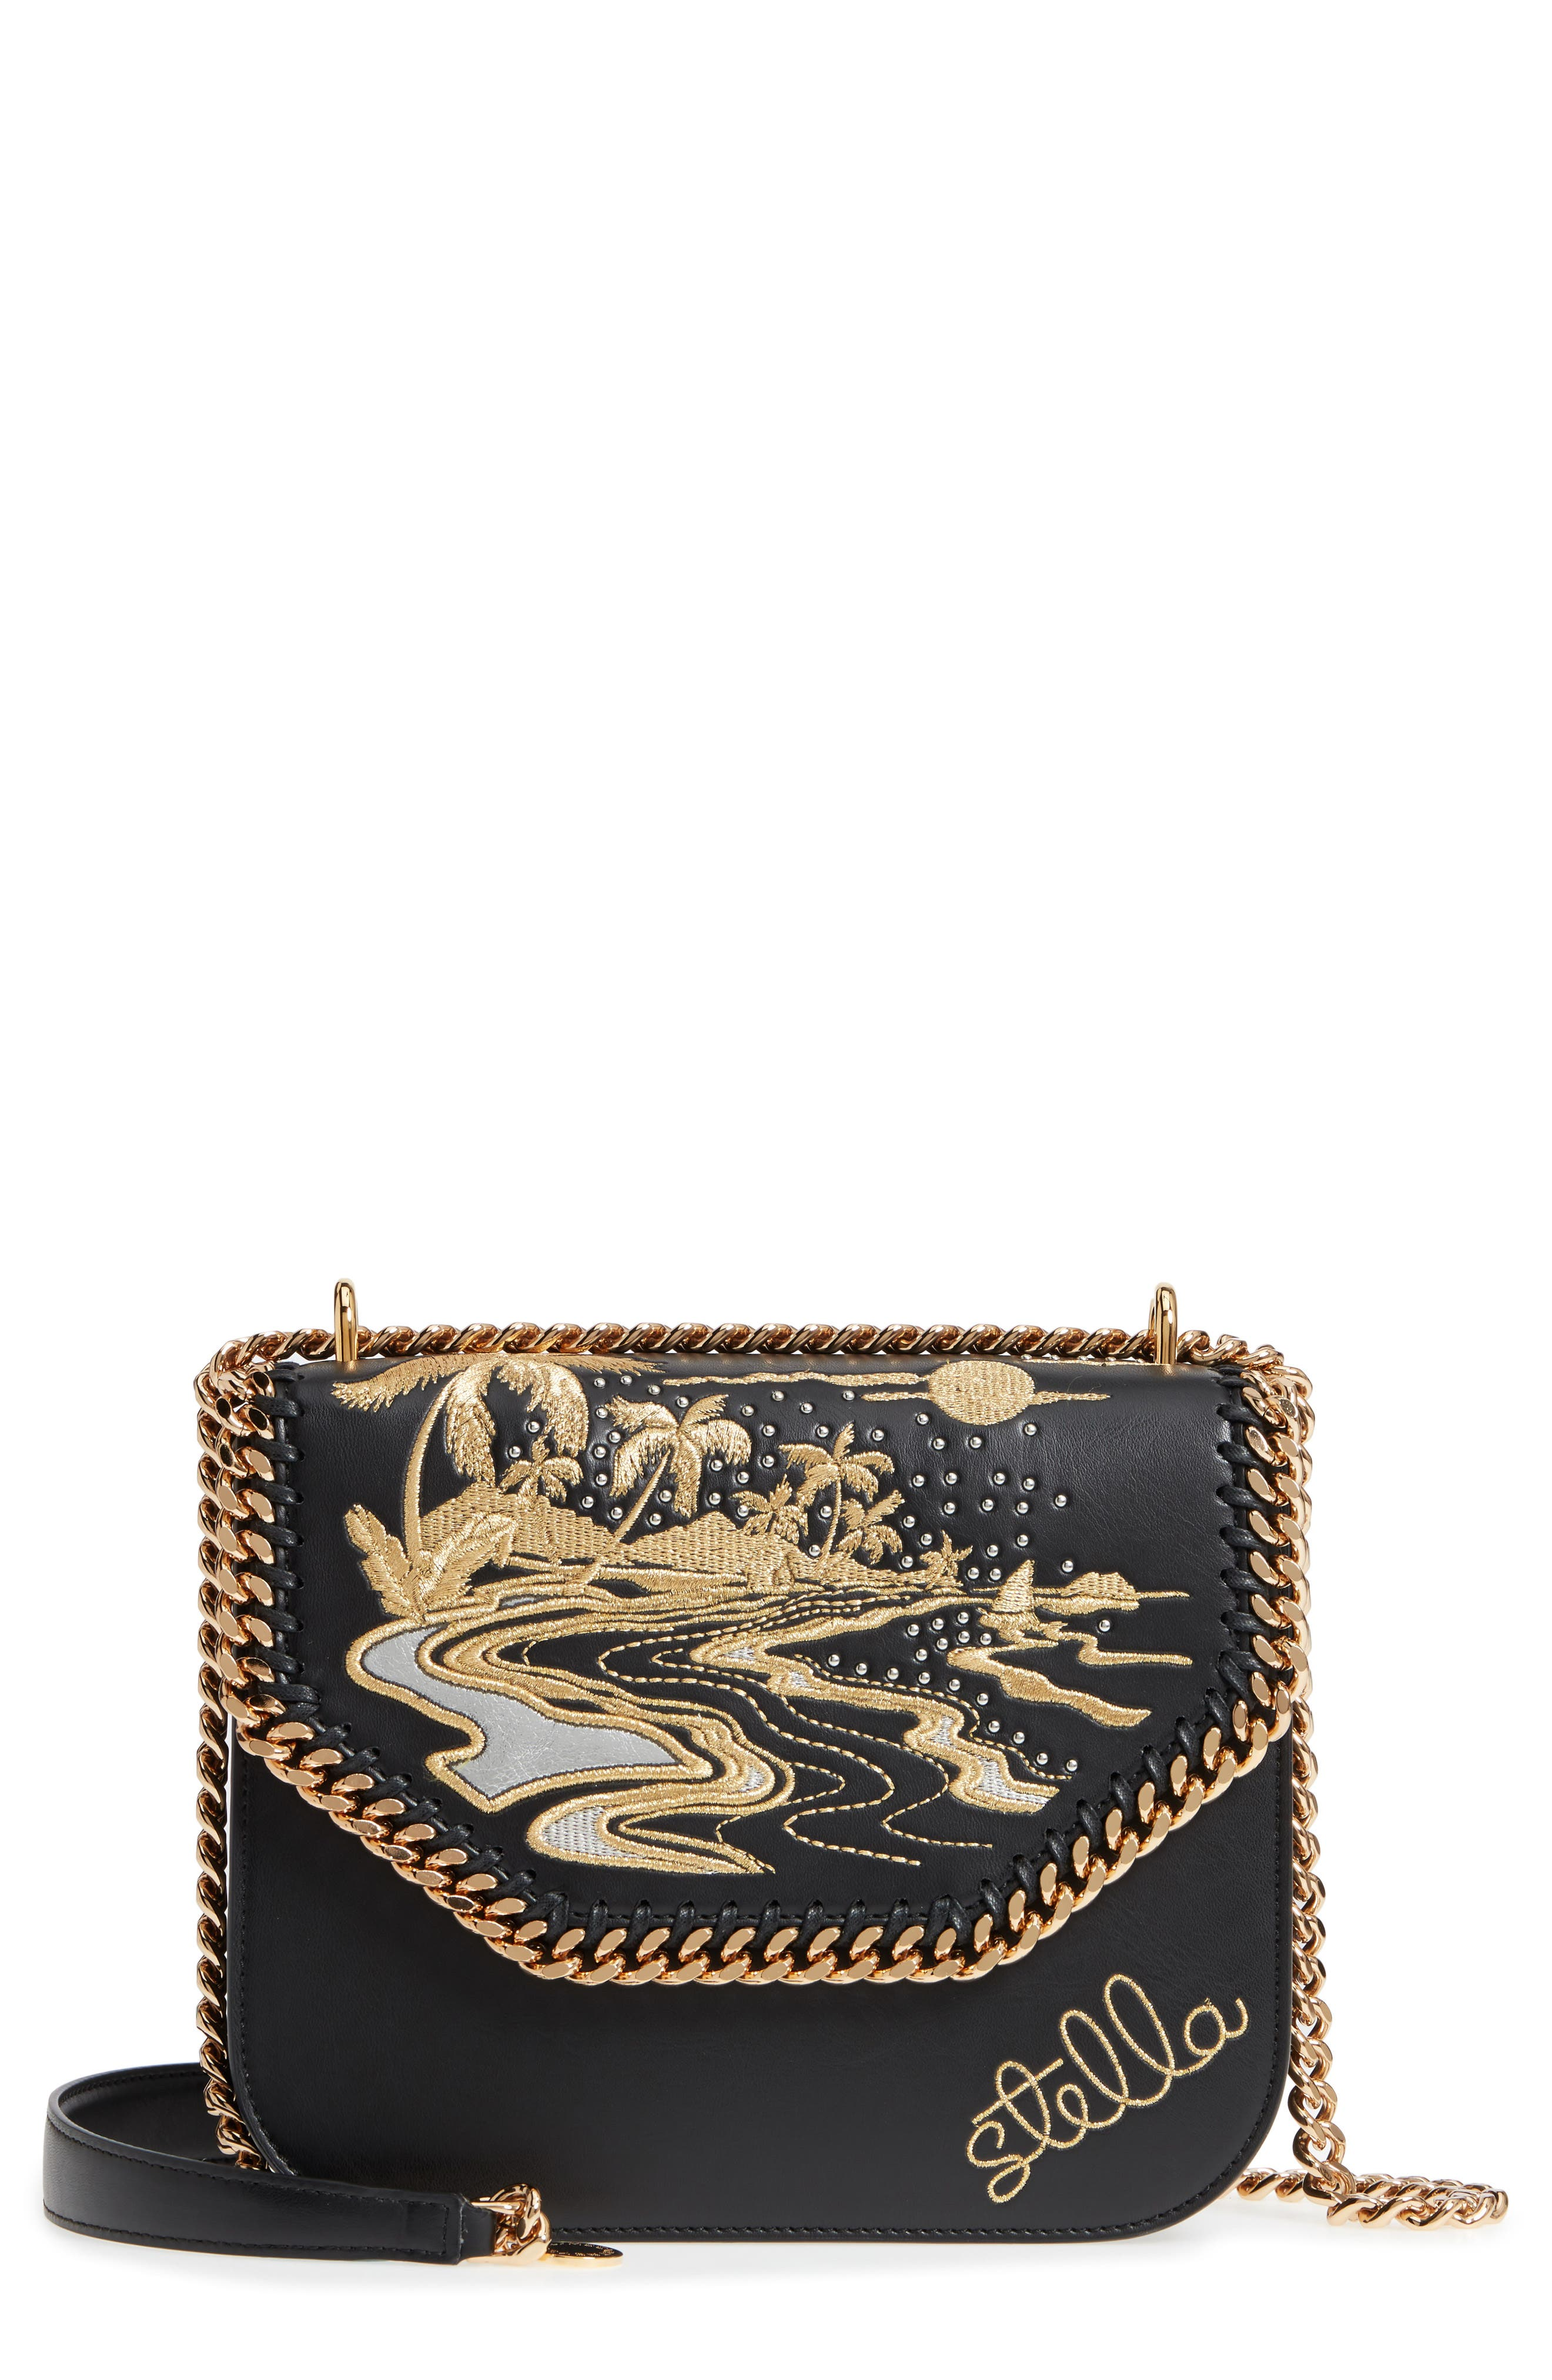 Falabella Hawaiian Embroidered Faux Leather Shoulder Bag,                             Main thumbnail 1, color,                             Black/ Gold